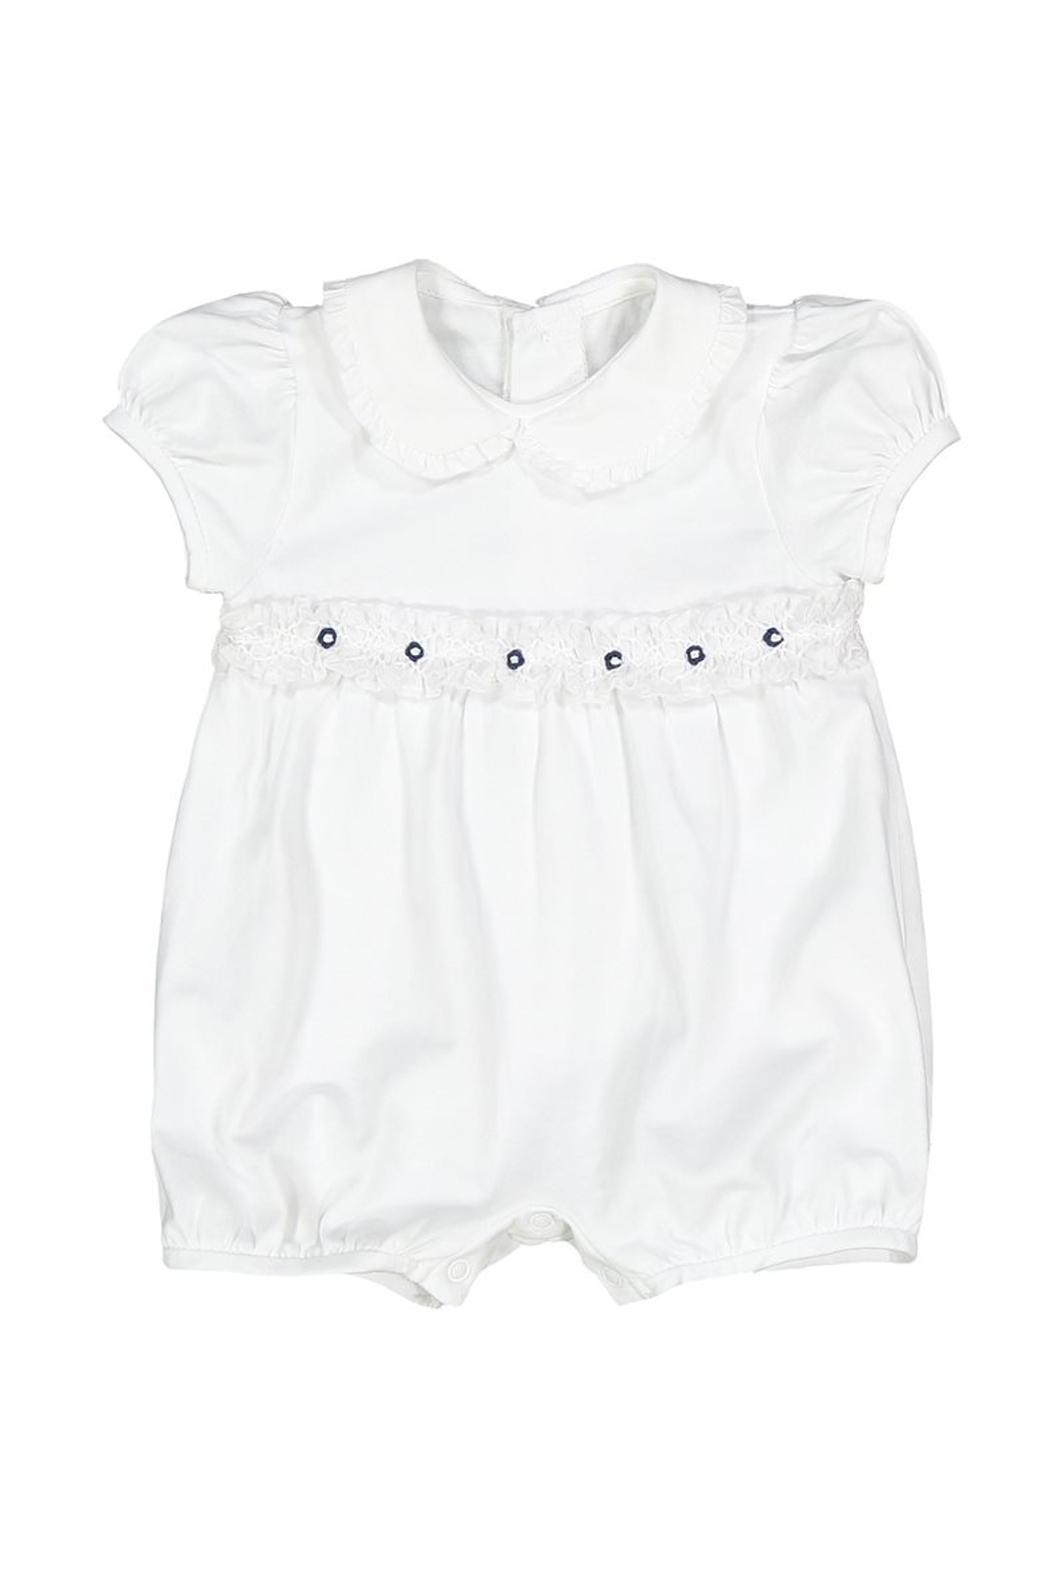 Malvi & Co. White Smocked Romper - Main Image